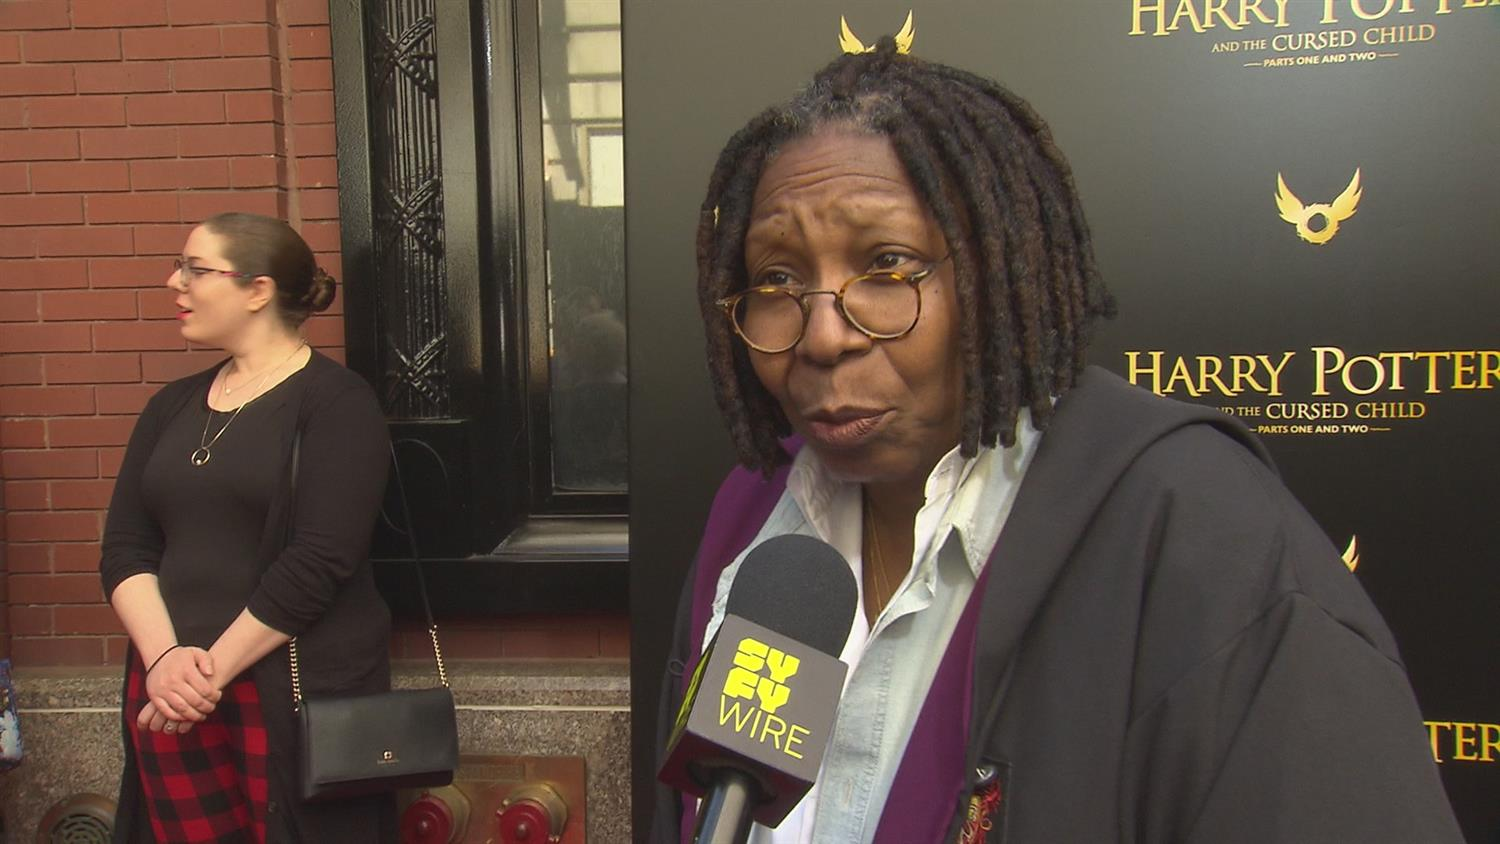 Harry Potter: Whoopi, Ezra Miller, Glenn Close and Others On When They Became Fans